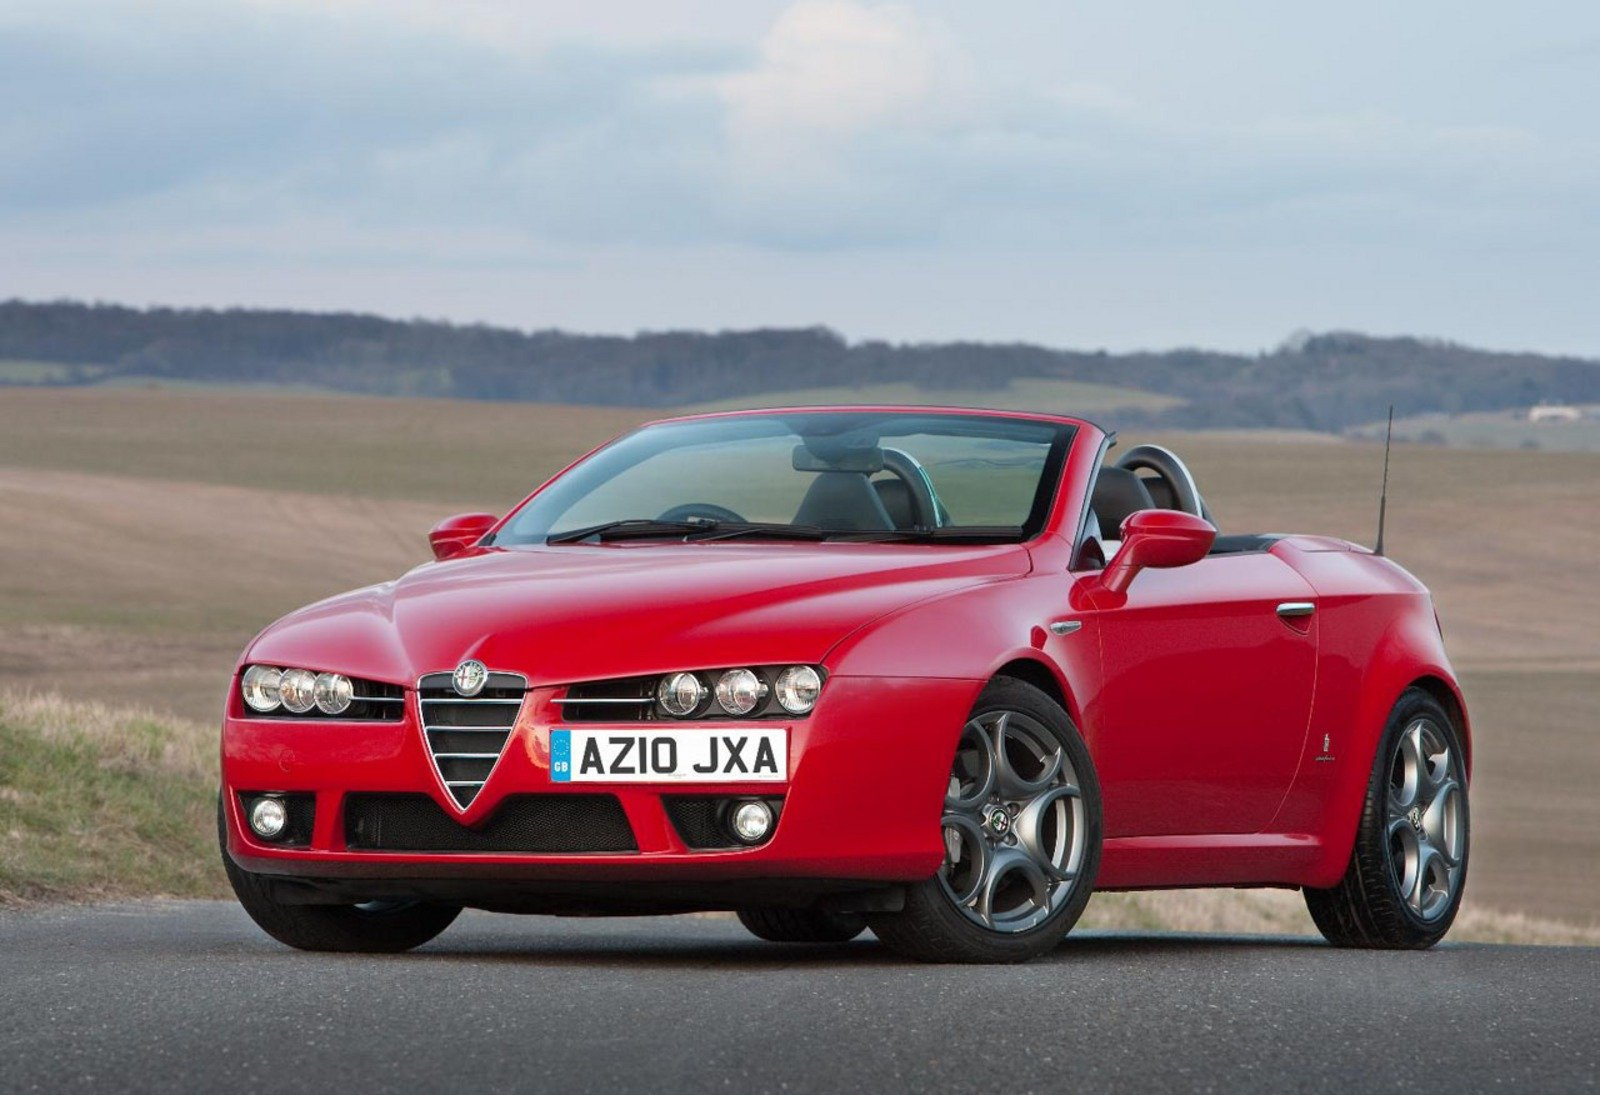 Alfa Romeo Spider Reviews Specs Prices Photos And Videos Top Speed Brera Original Design Unique Size Big Yellow Gets New Engines